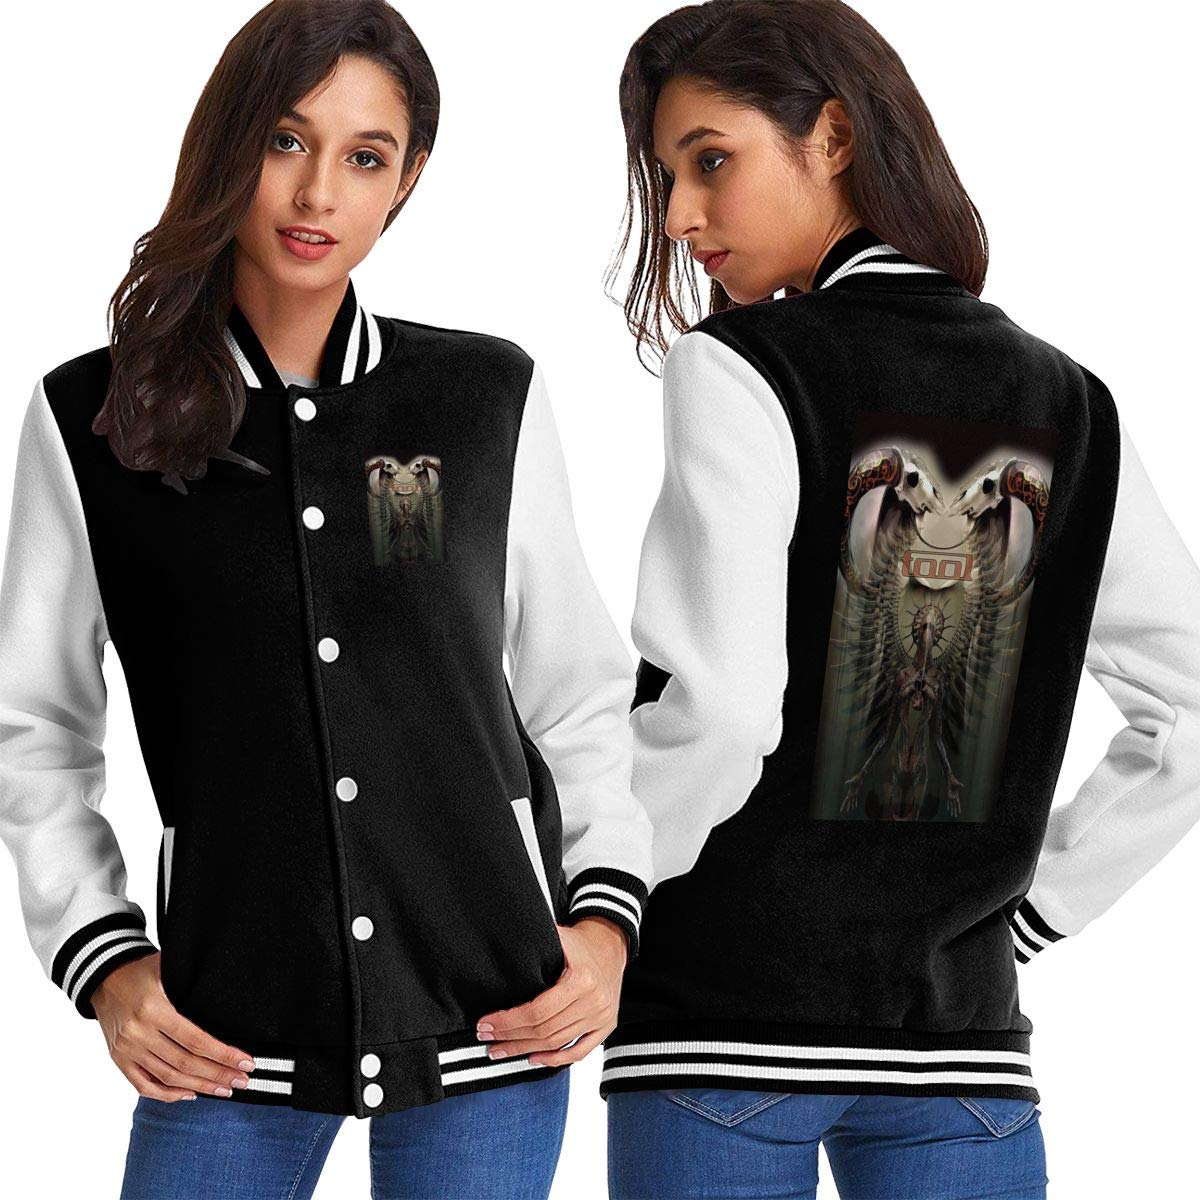 Tool Band Womens Custom Varsity Jacket Personalized Baseball Jacket Uniform Sweater Coat